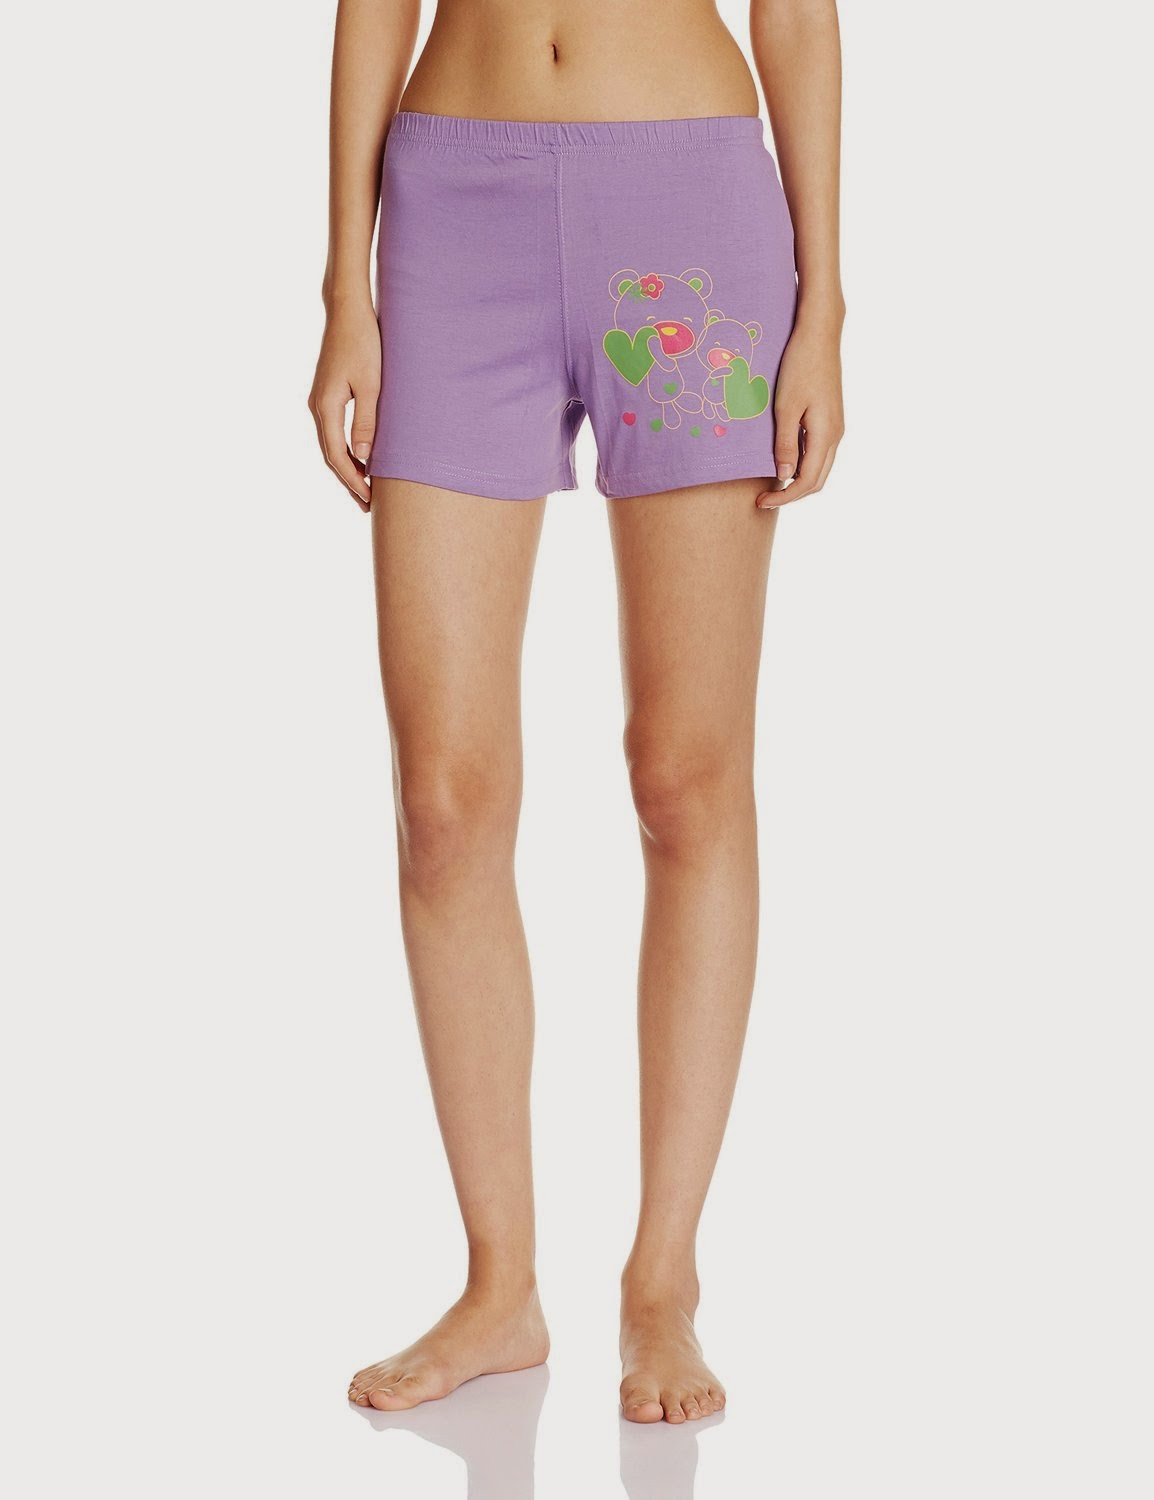 Buy Riot Women's Cotton Boxer Rs. 105 only at Amazon.